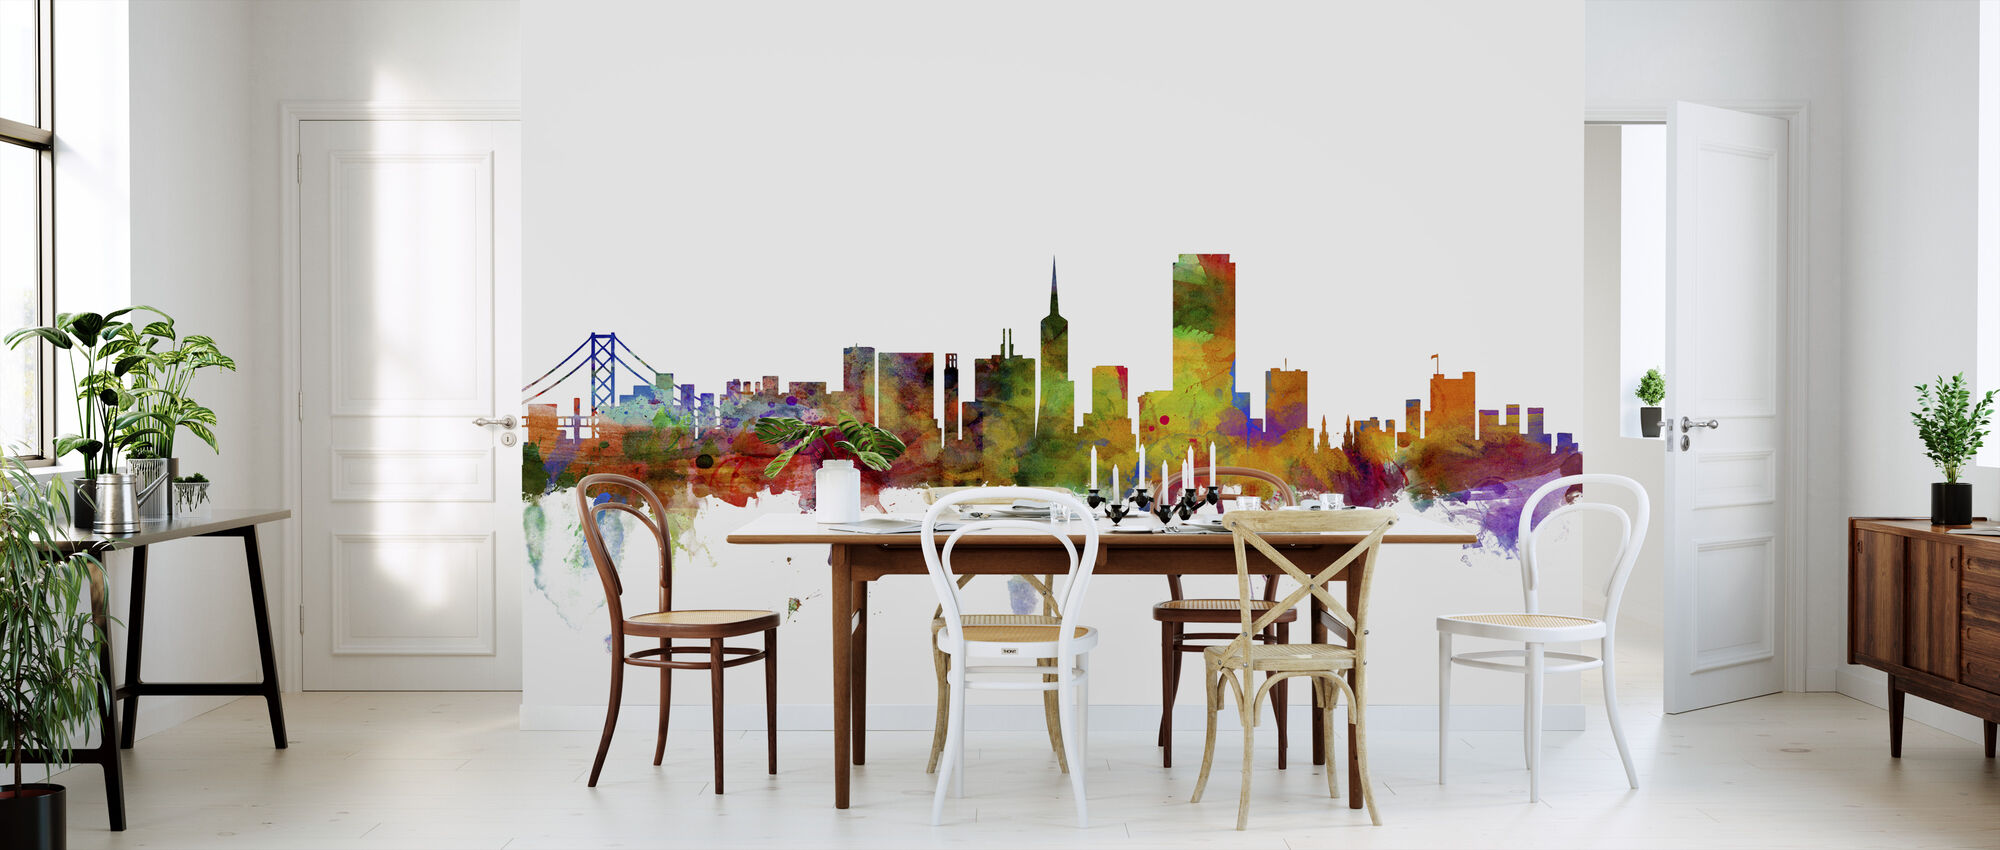 San Francisco Skyline - Wallpaper - Kitchen